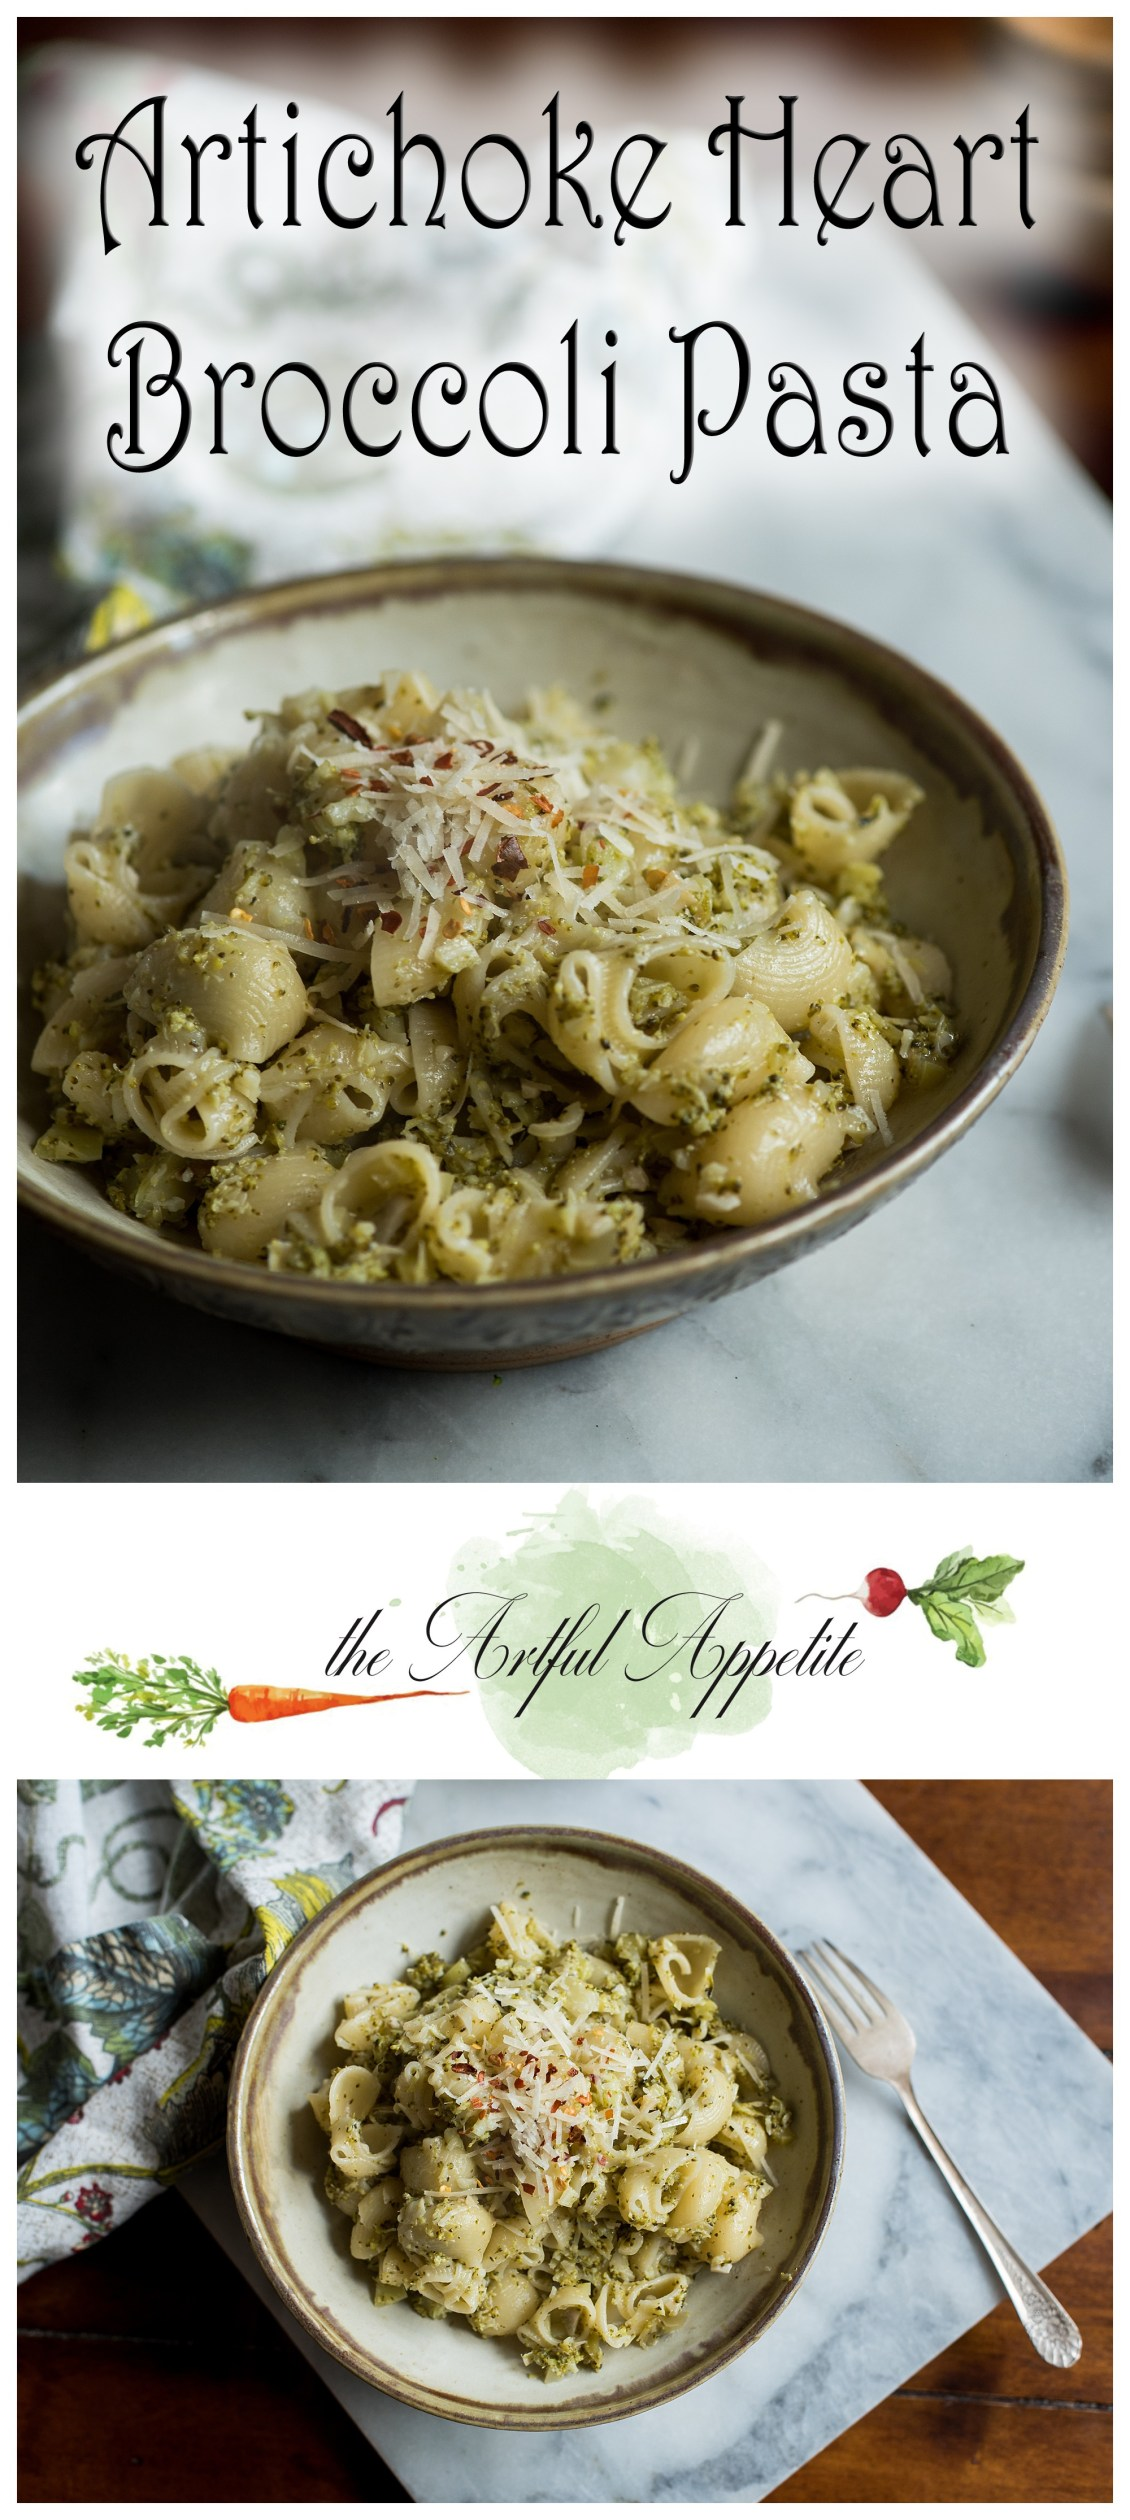 This Artichoke Heart Broccoli Pasta is simple, easy, healthy, and delicious!